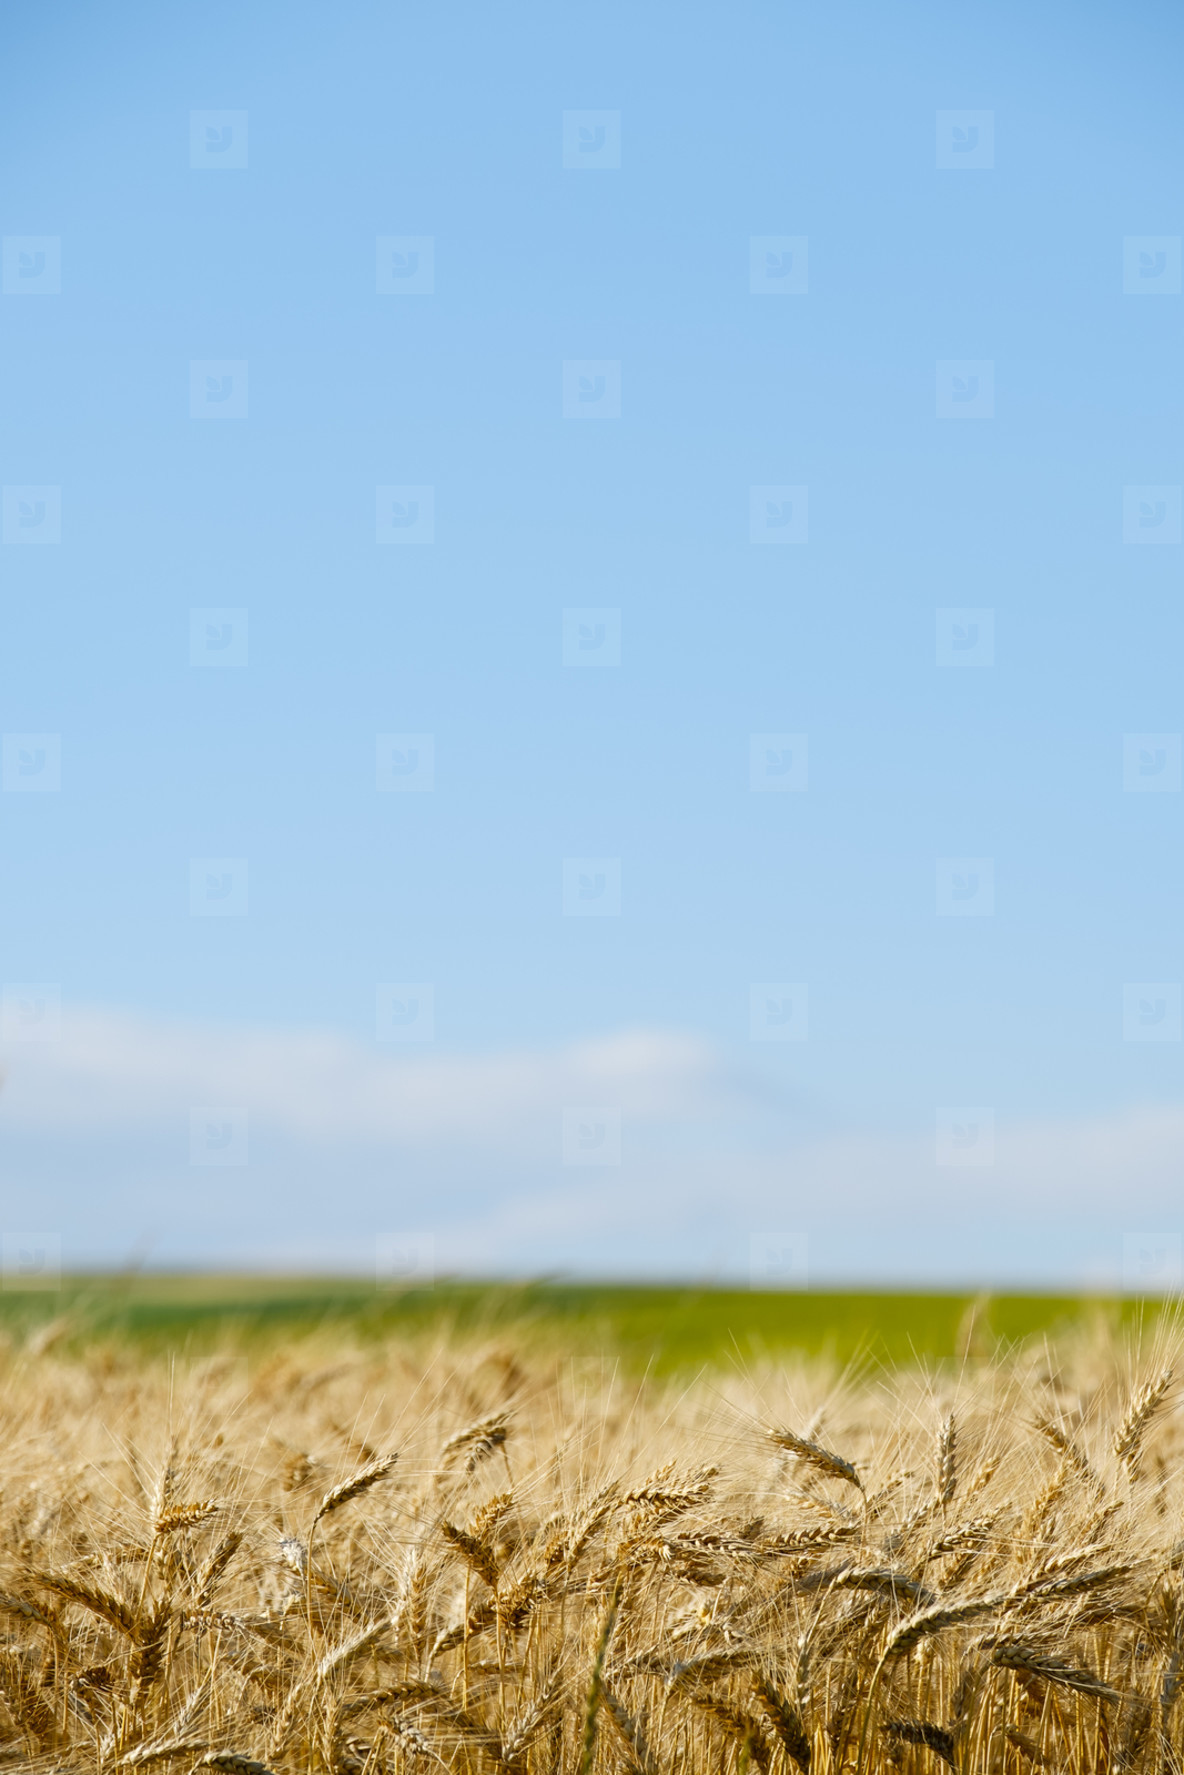 Wheat field in a sunny day